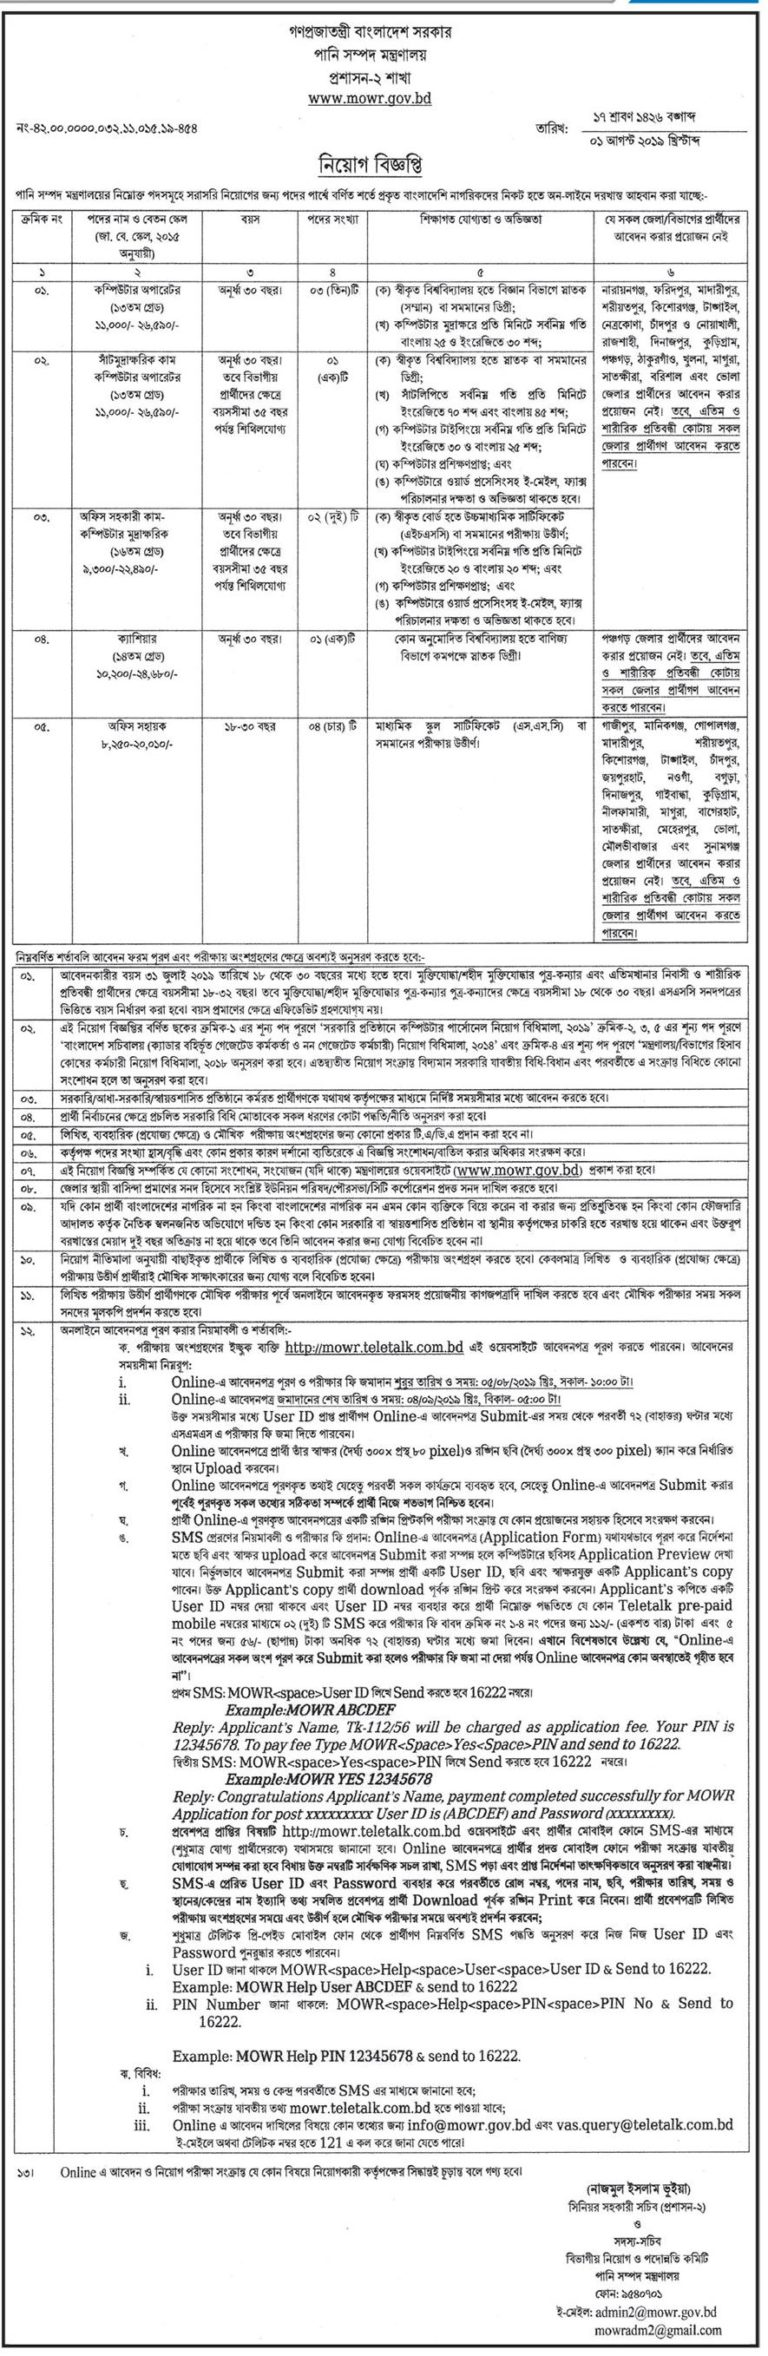 Ministry-of-Water-Resources-job-circular-2019